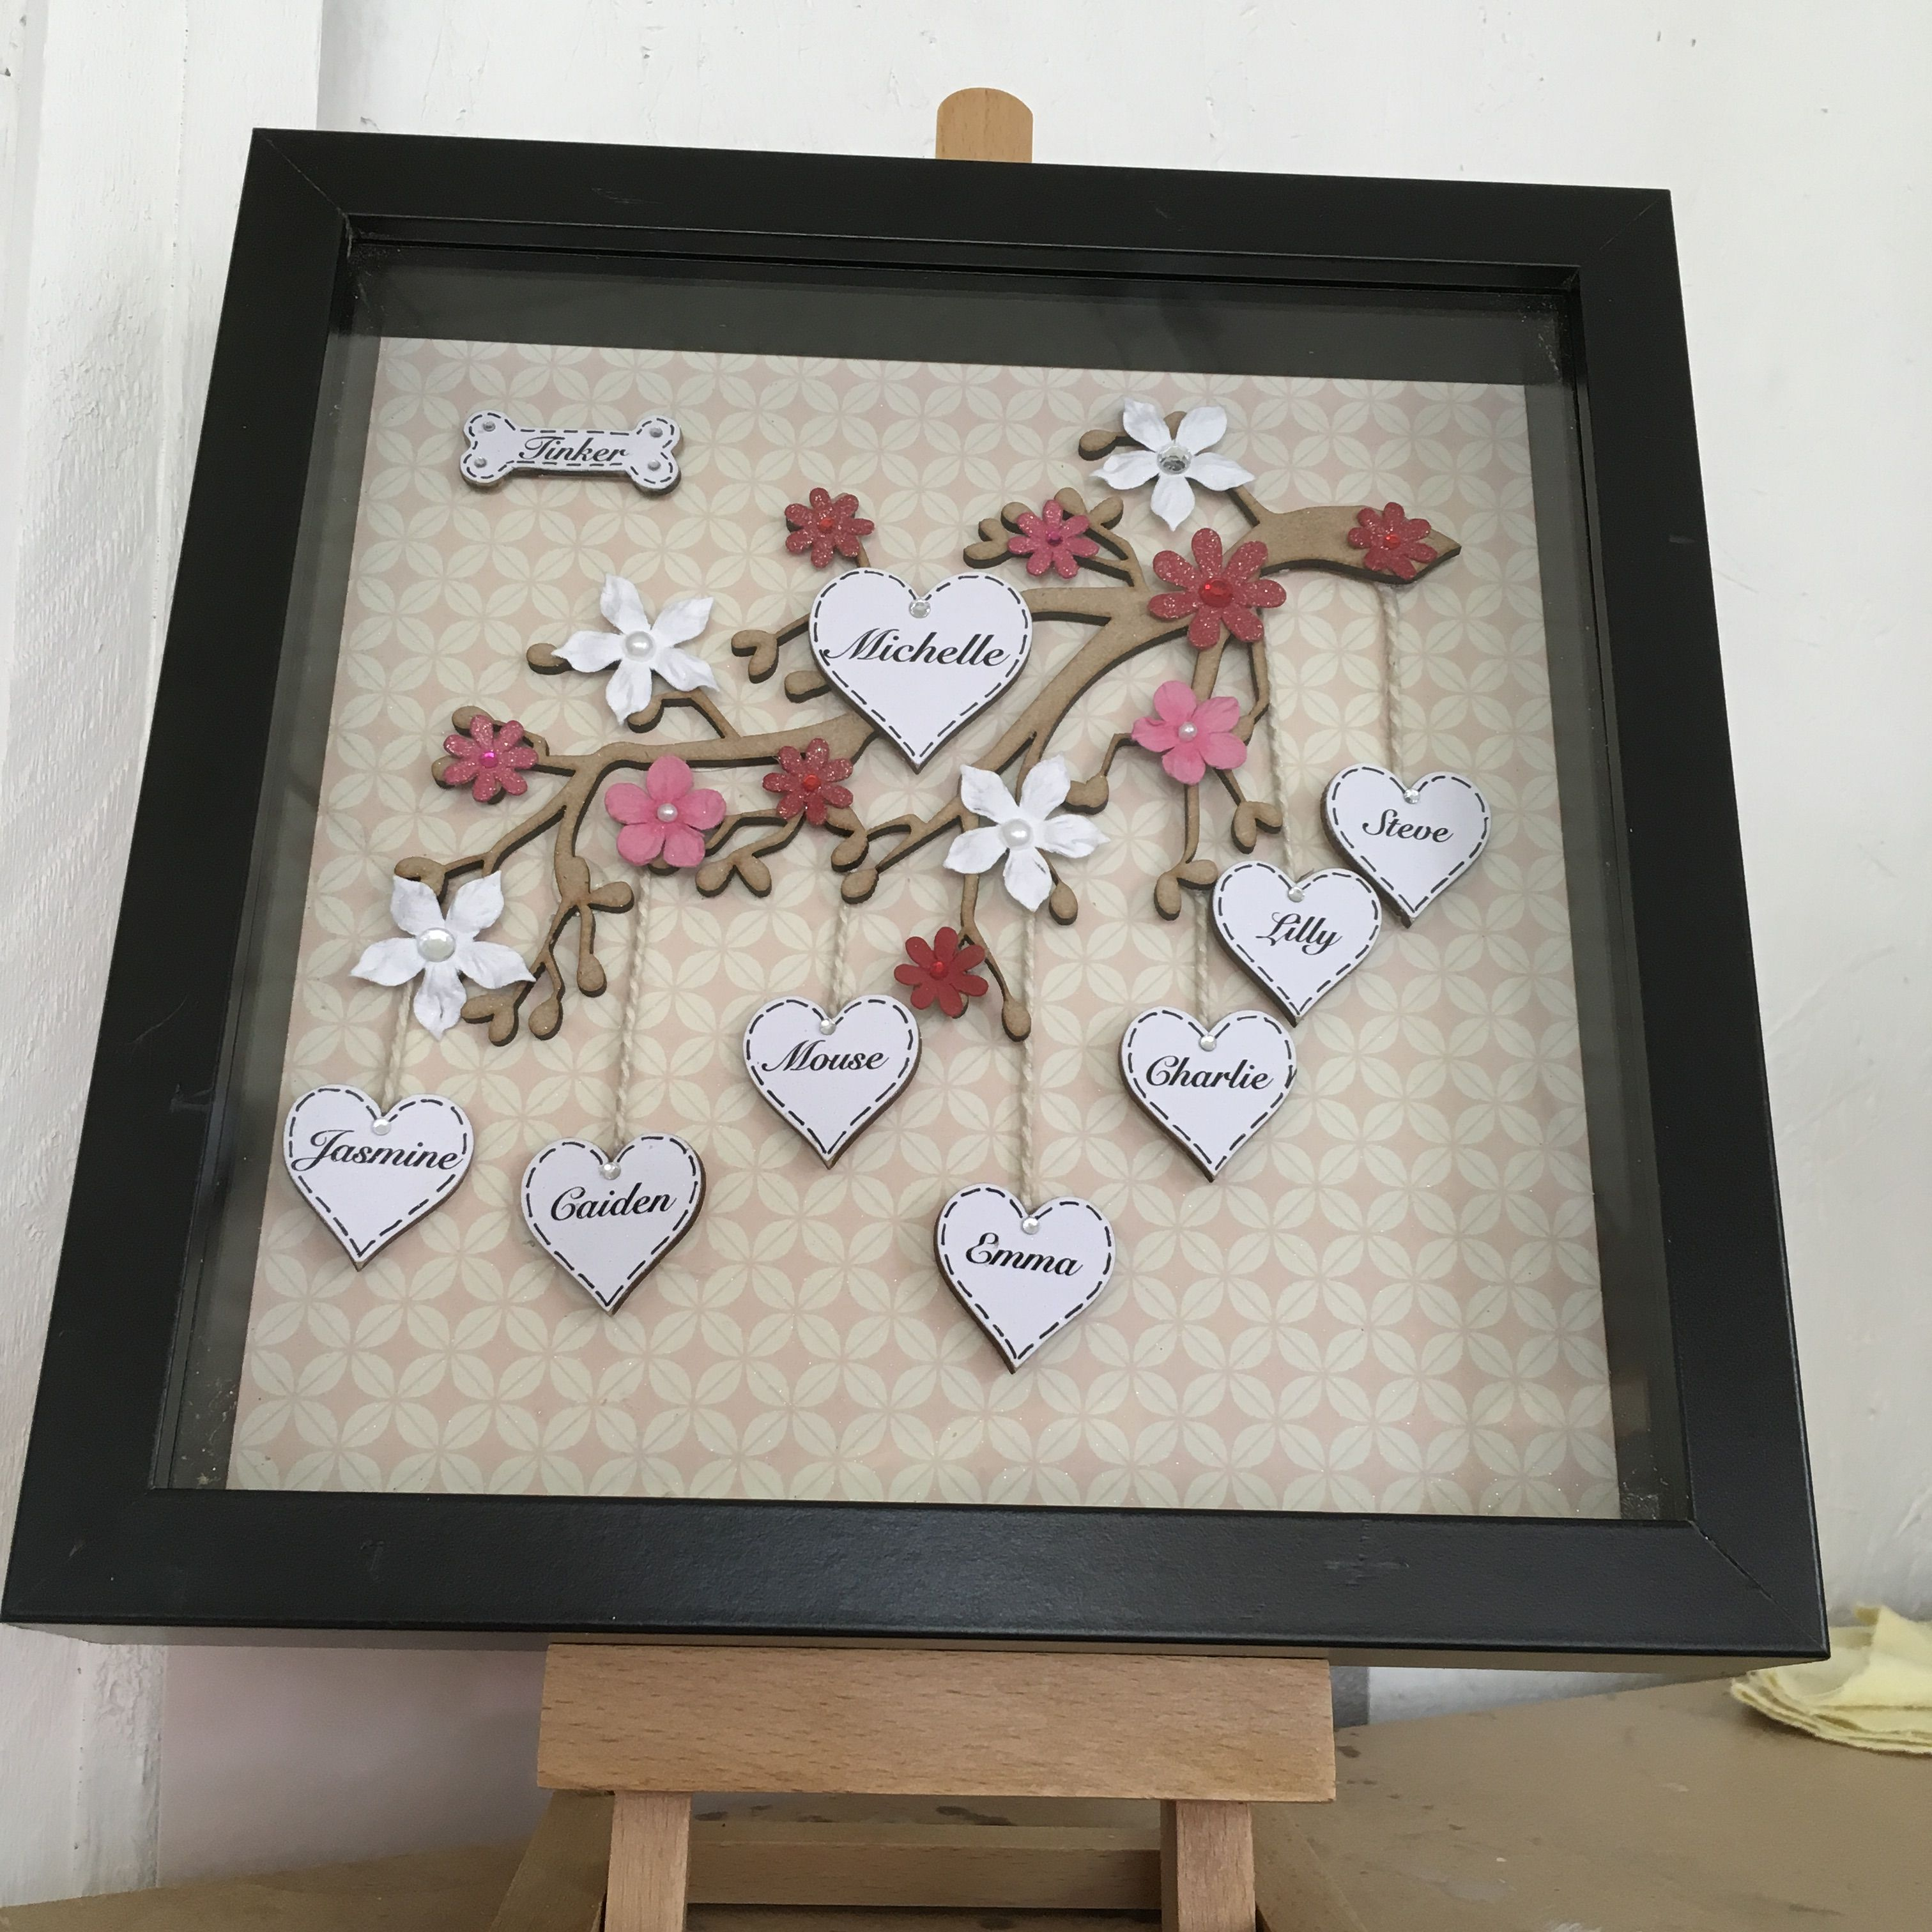 Family not always connected by blood but heart strings by taz frame crafts family not always connected by blood but heart strings by taz jeuxipadfo Choice Image